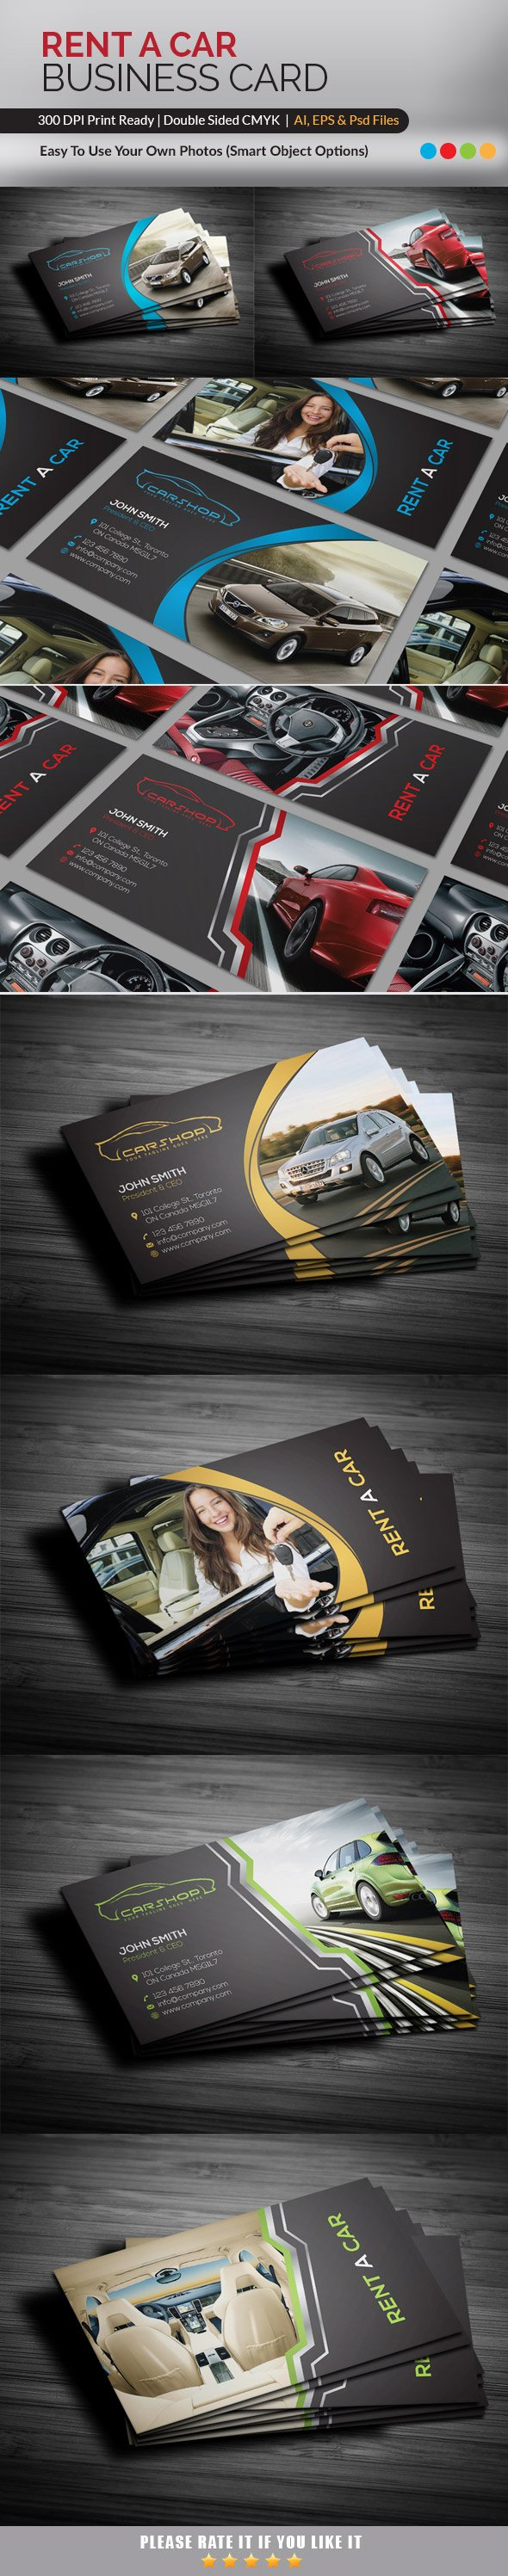 Rent a car business card business card templates creative market reheart Image collections